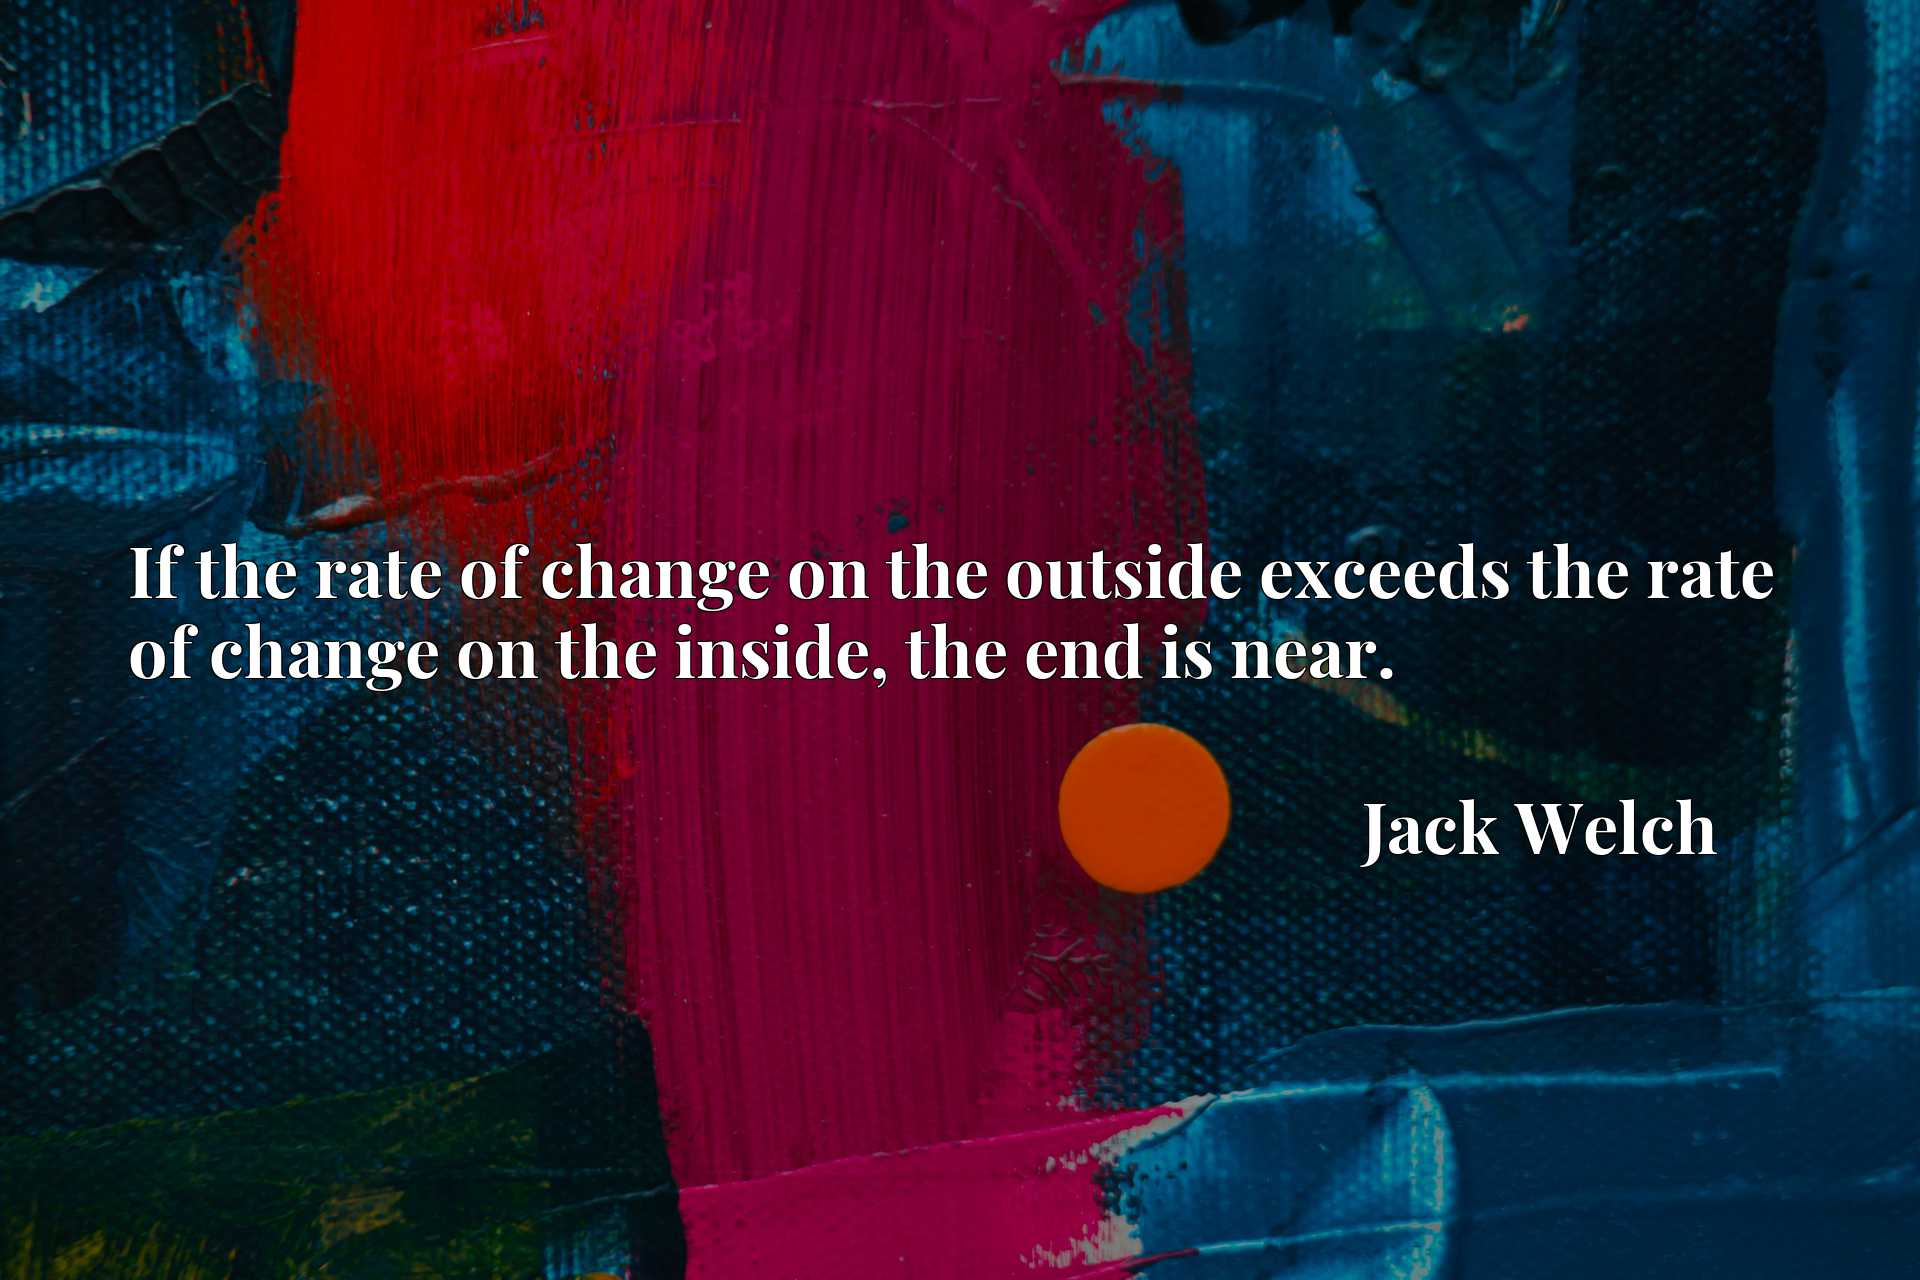 If the rate of change on the outside exceeds the rate of change on the inside, the end is near.